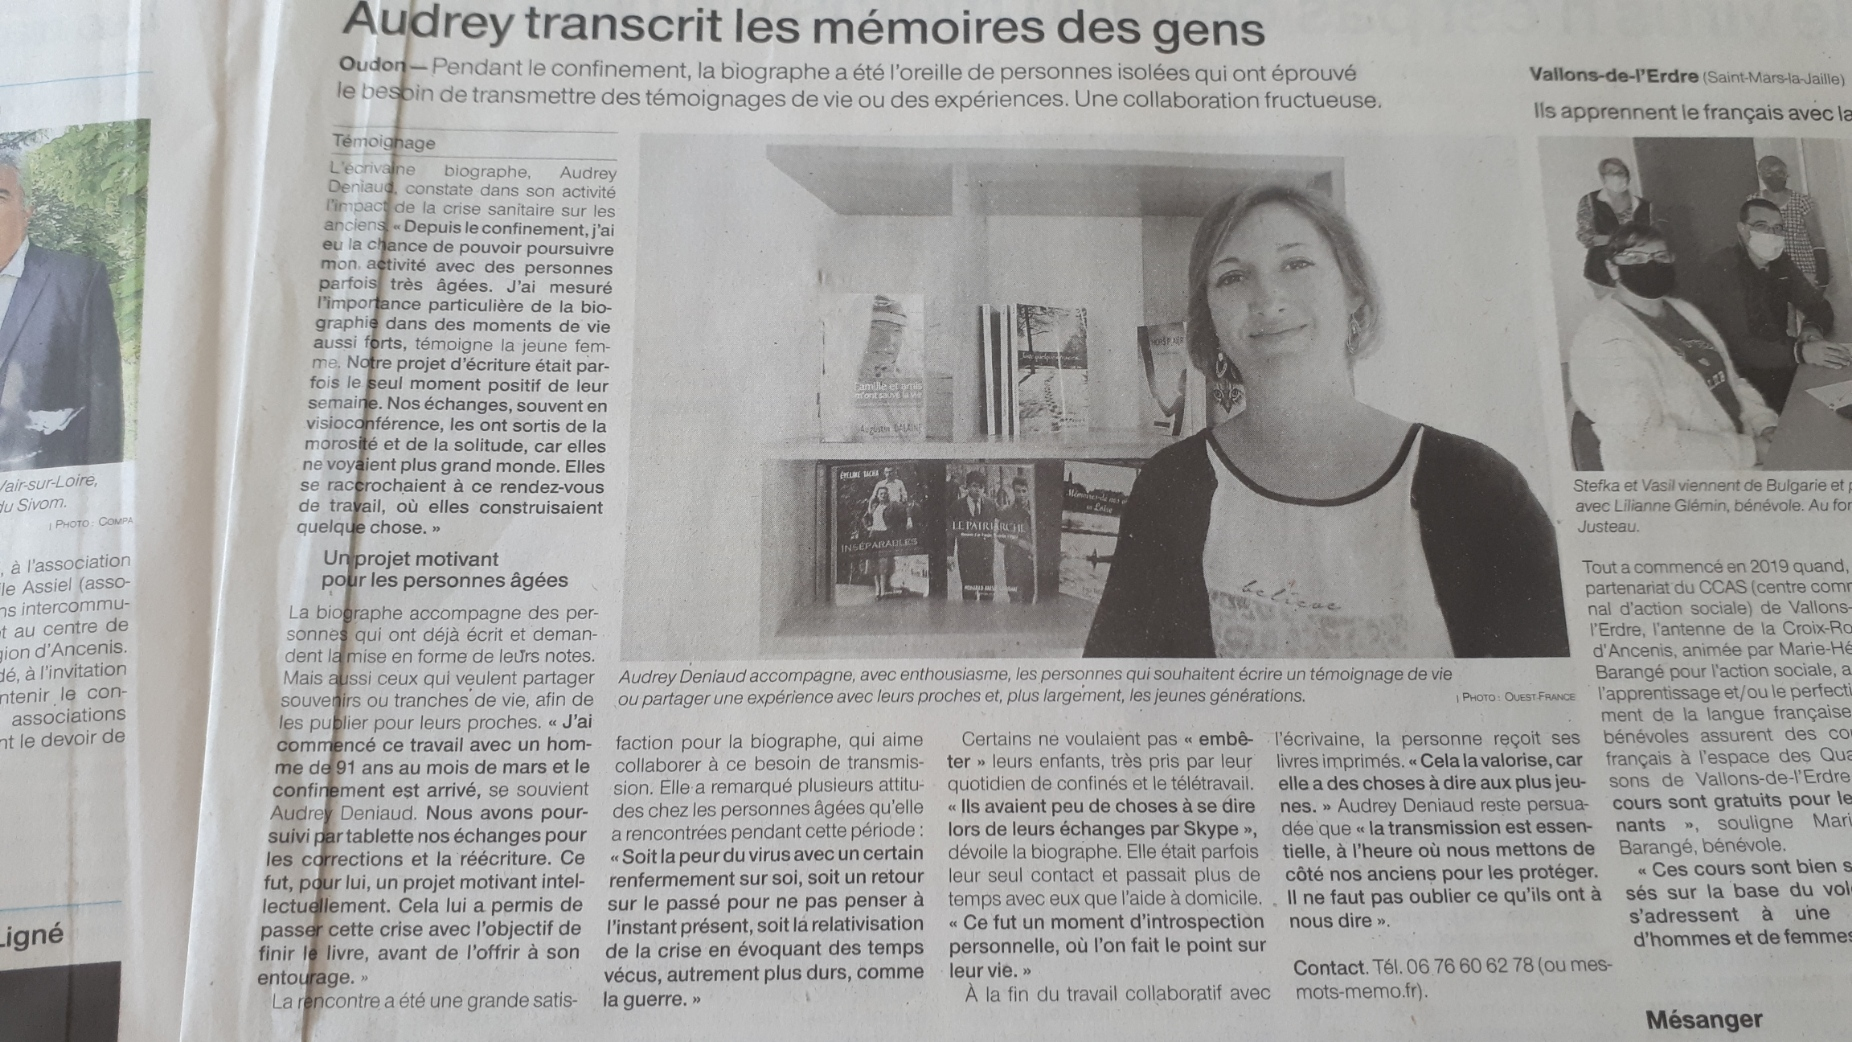 ouest france audrey deniaud